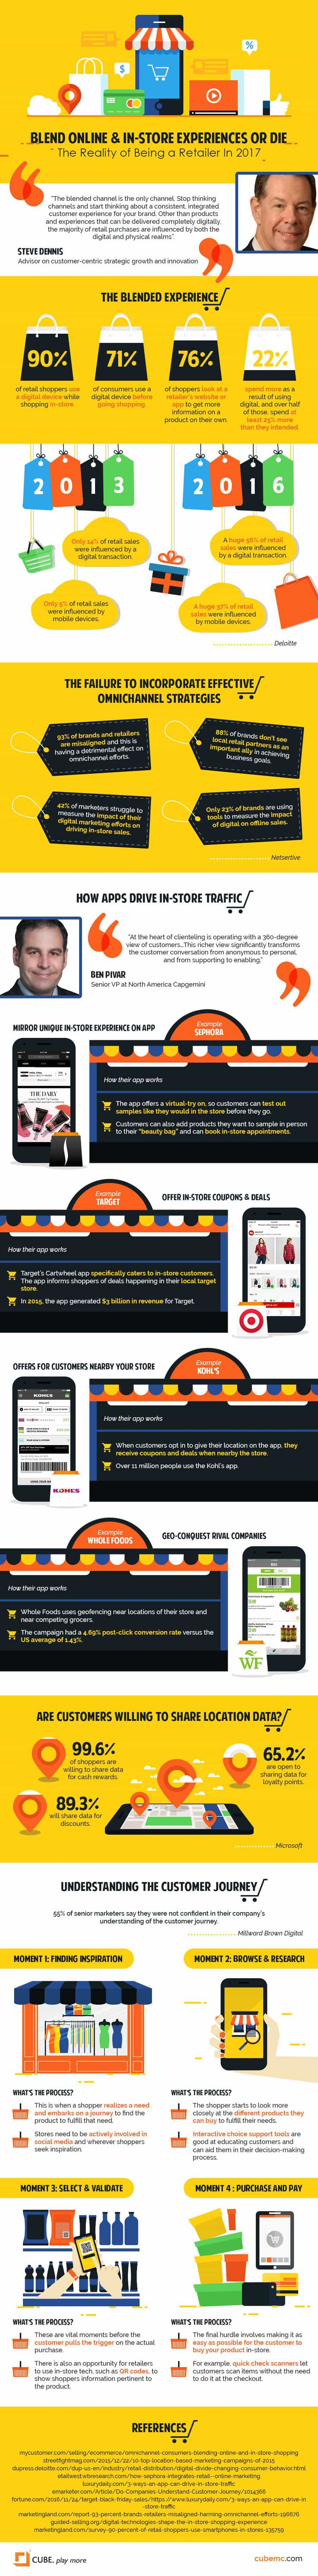 Why Retailers Must Create a Blended Online and In-Store Shopping Journey [Infographic]